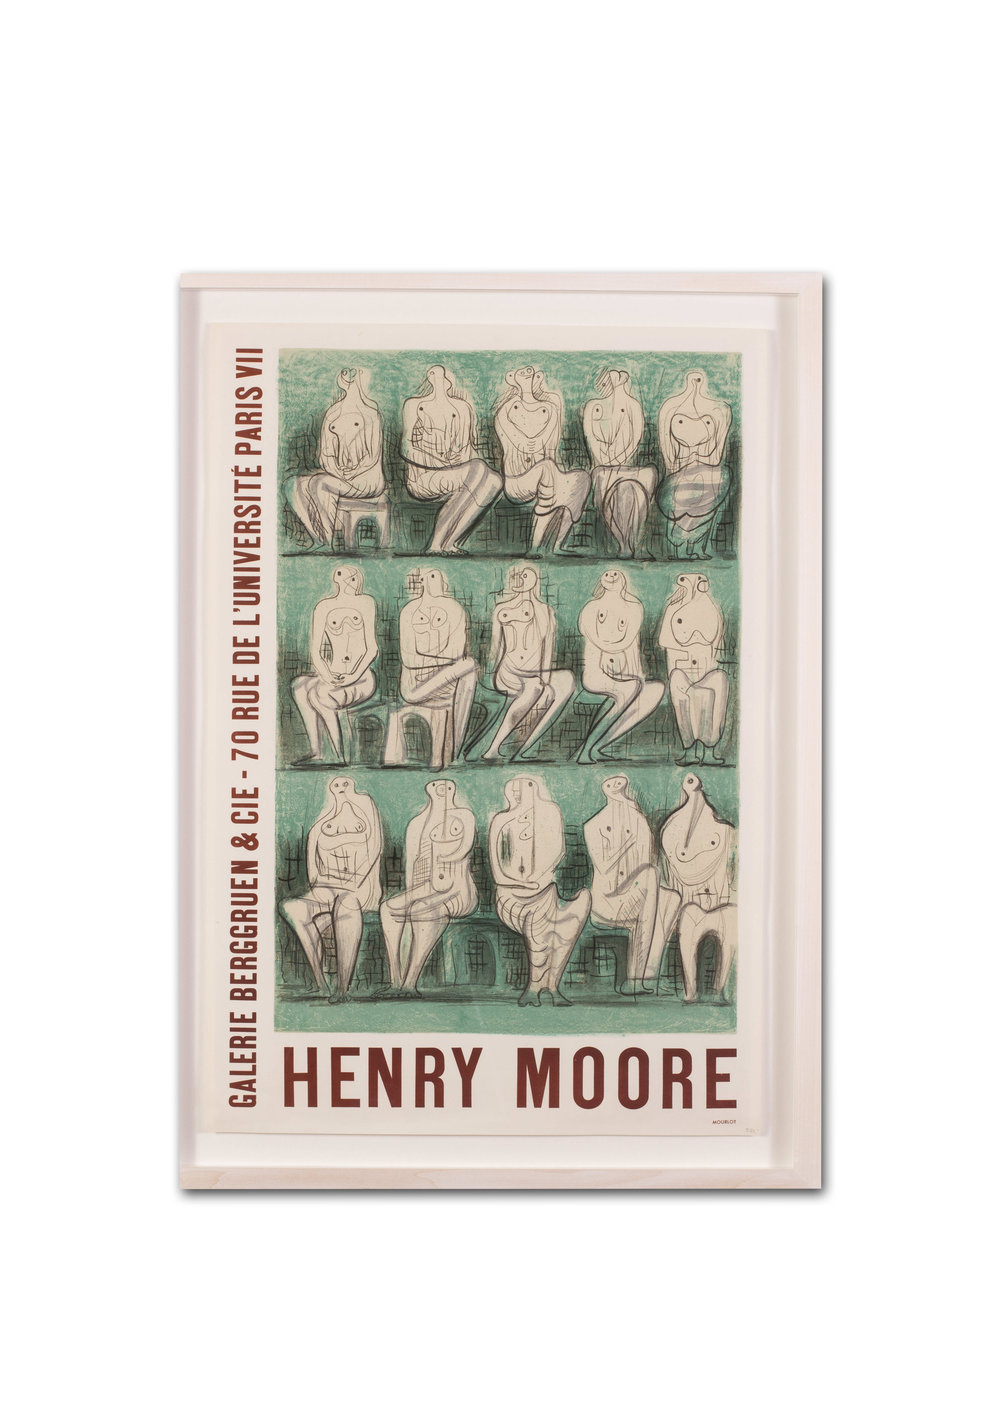 Henry Moore OM CH FBA    Lithographic poster created for the 1957 exhibition at Galerie Berggruen & Cie, Paris,   63.3 x 43.5cm.   Price: £550